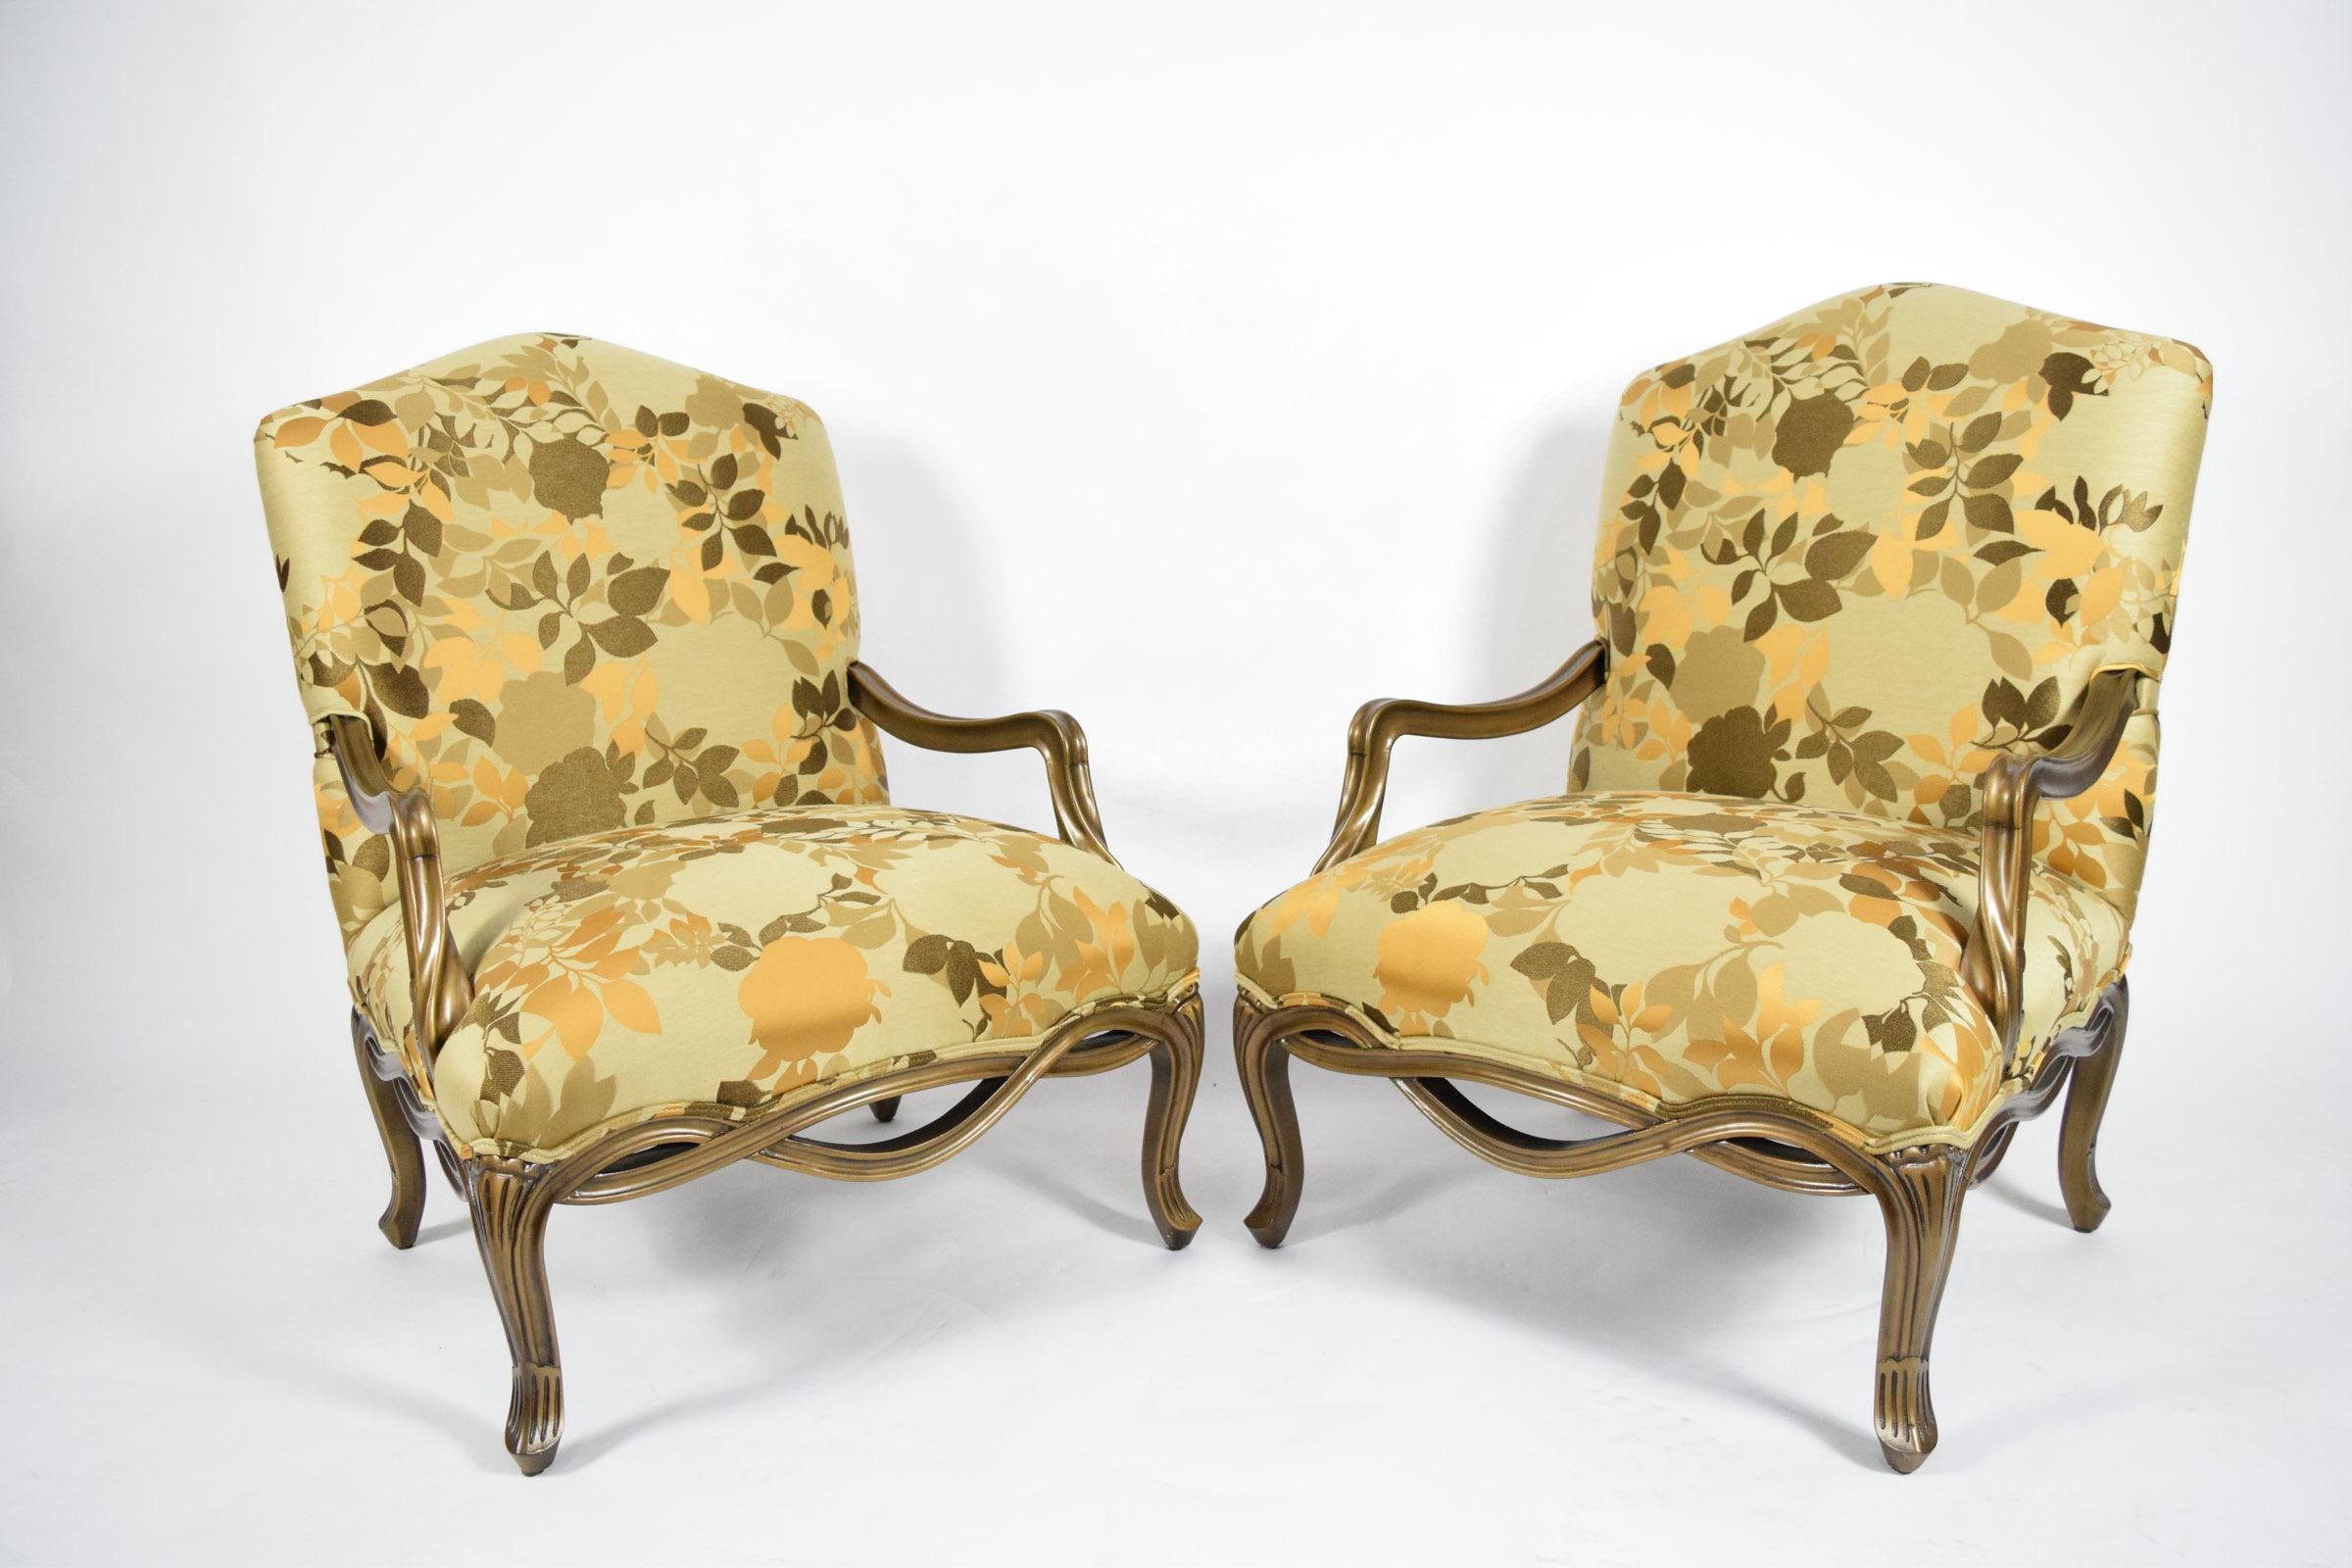 This Is A Custom Designed Pair Of Louis XVI Style Lounge Chairs With  Oversized Seats Upholstered